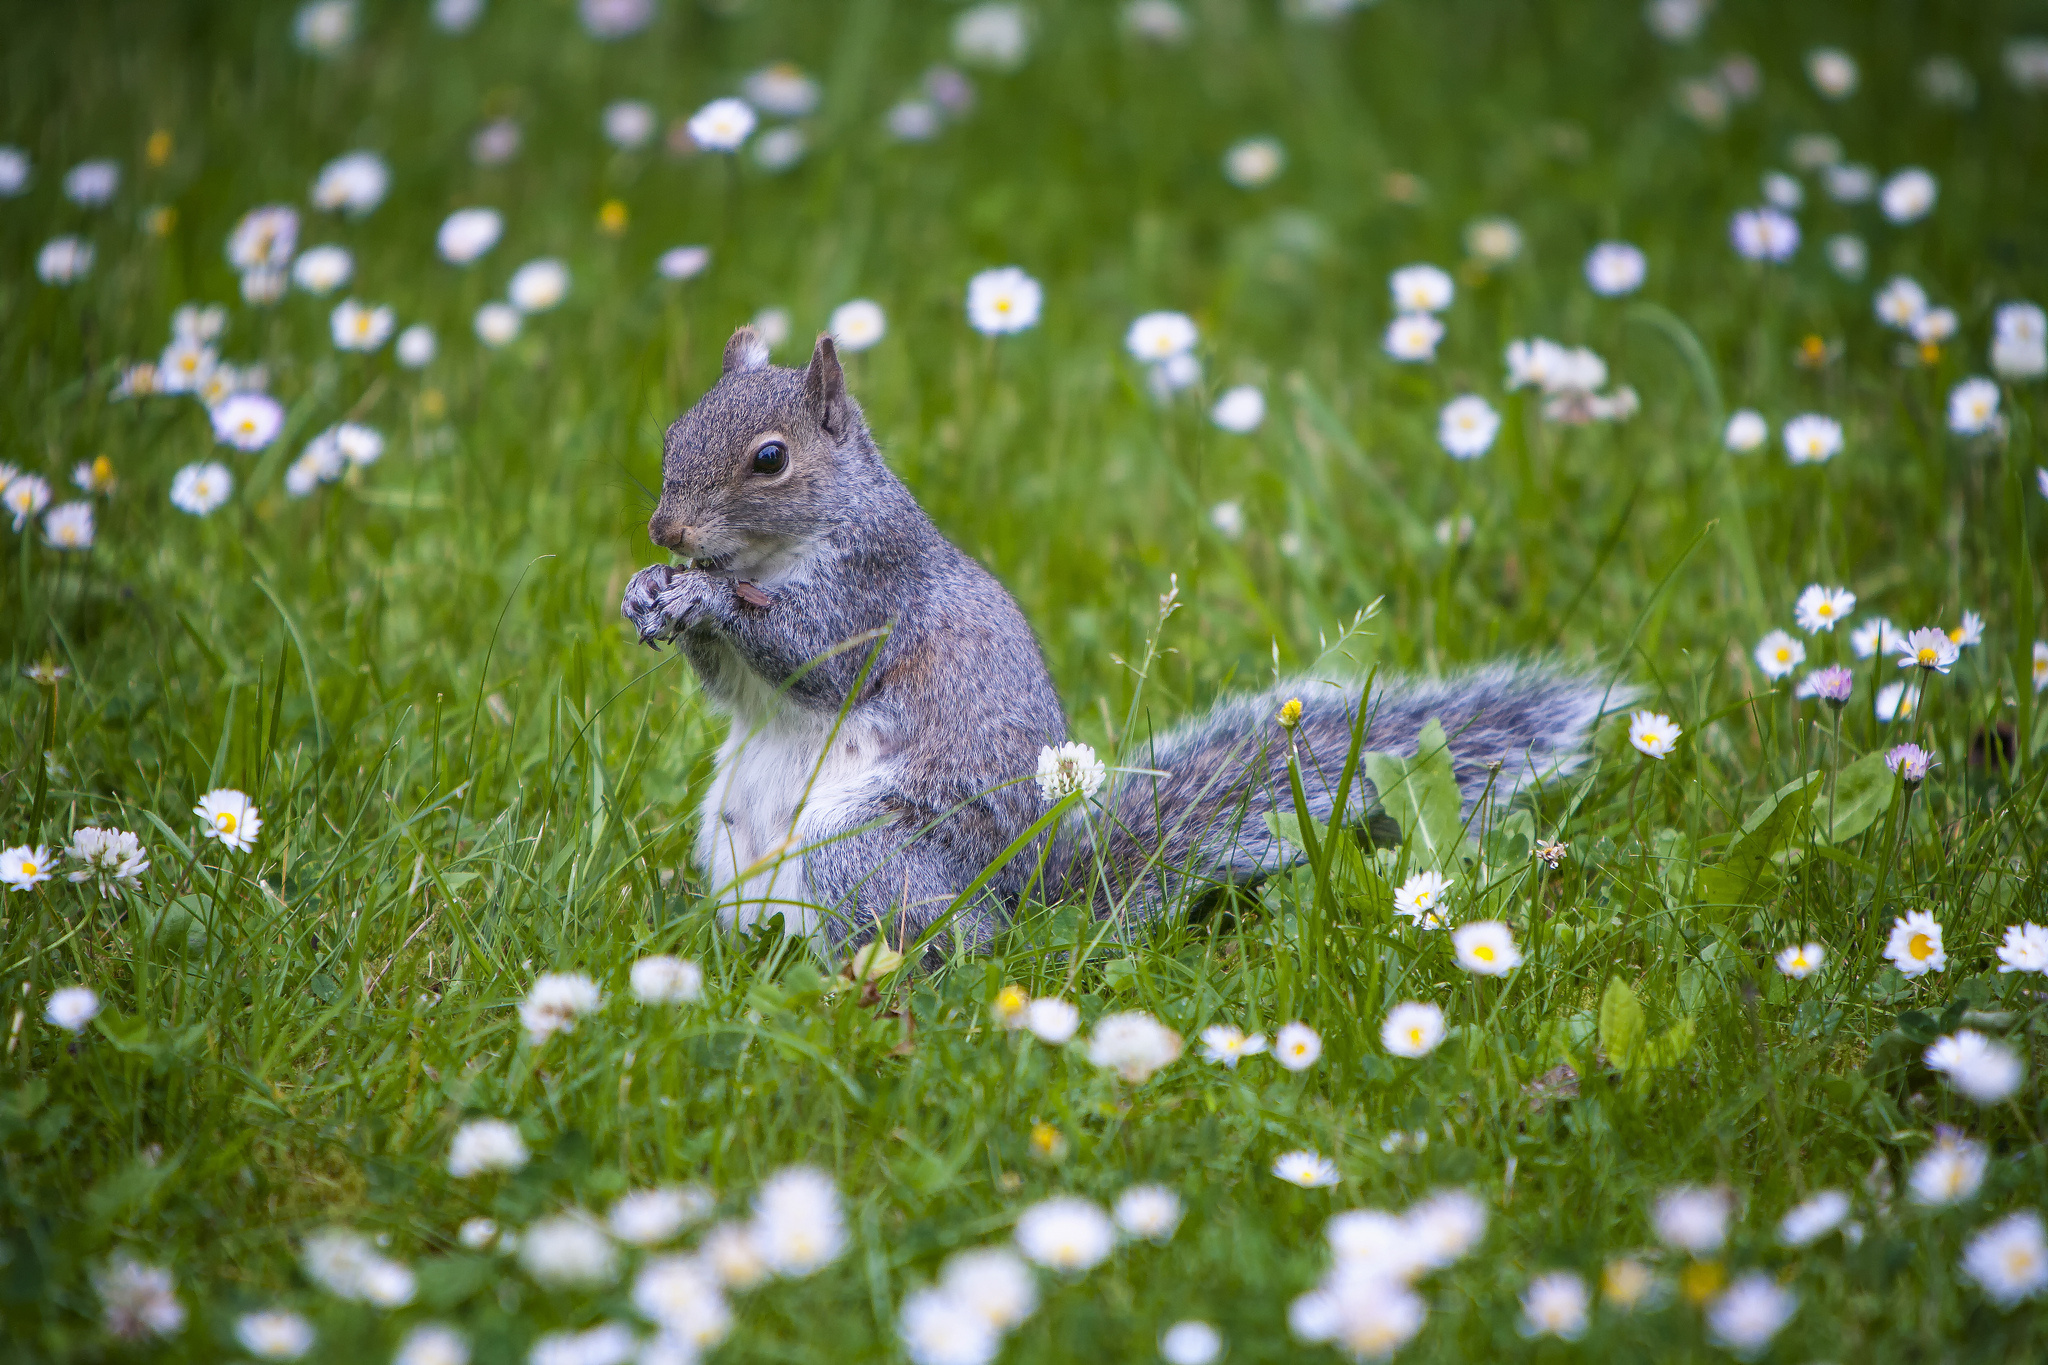 cute squirrel free background - photo #35